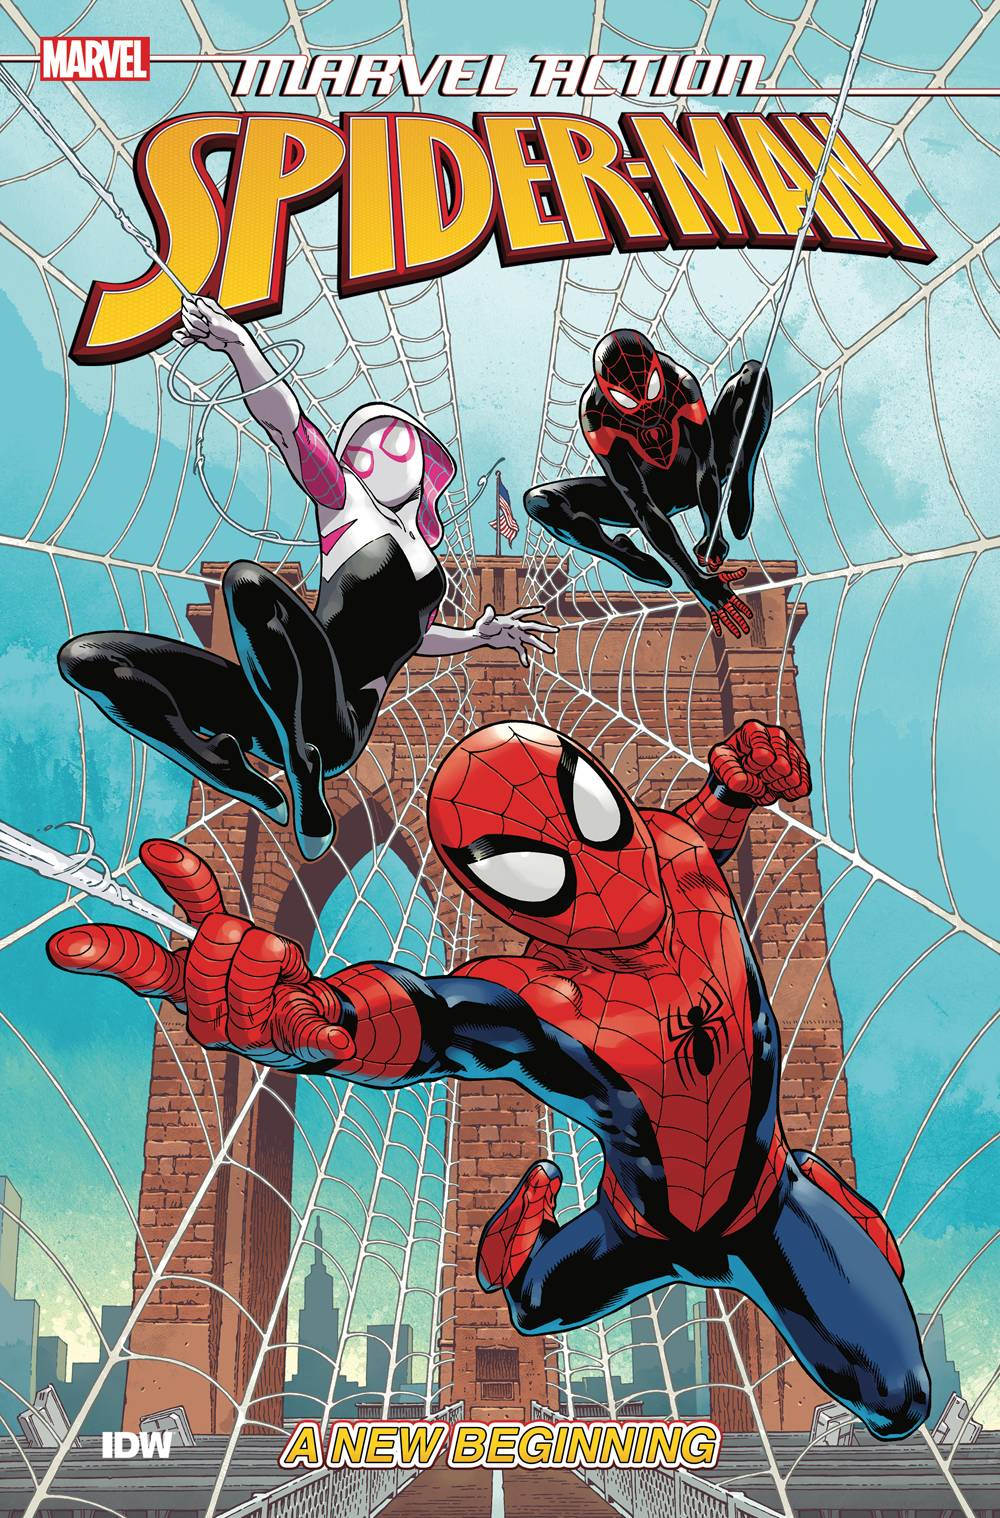 MARVEL ACTION SPIDER-MAN TP 1 NEW BEGINNING.jpg